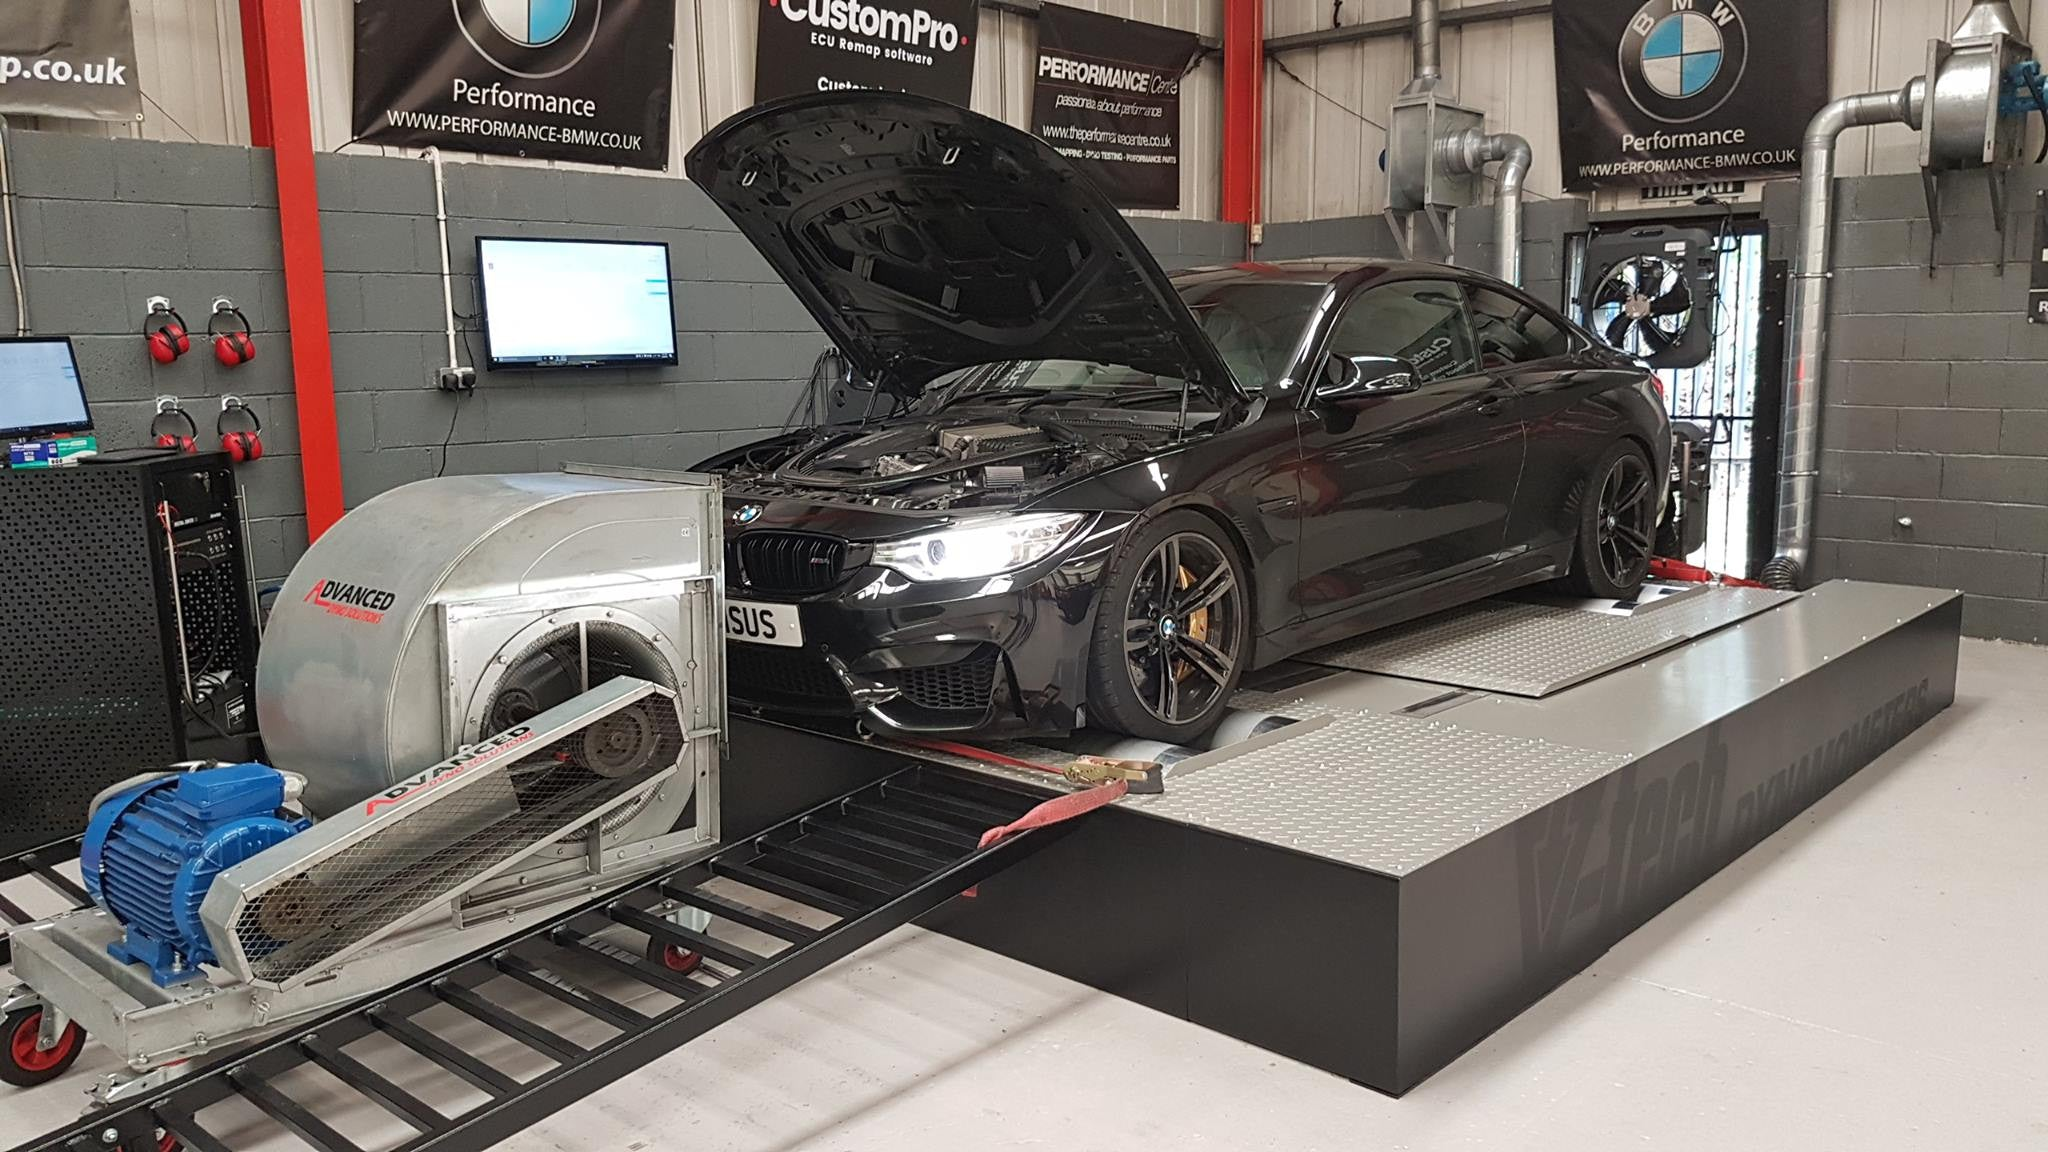 BMW S55 M4 - Custom map 6 settings